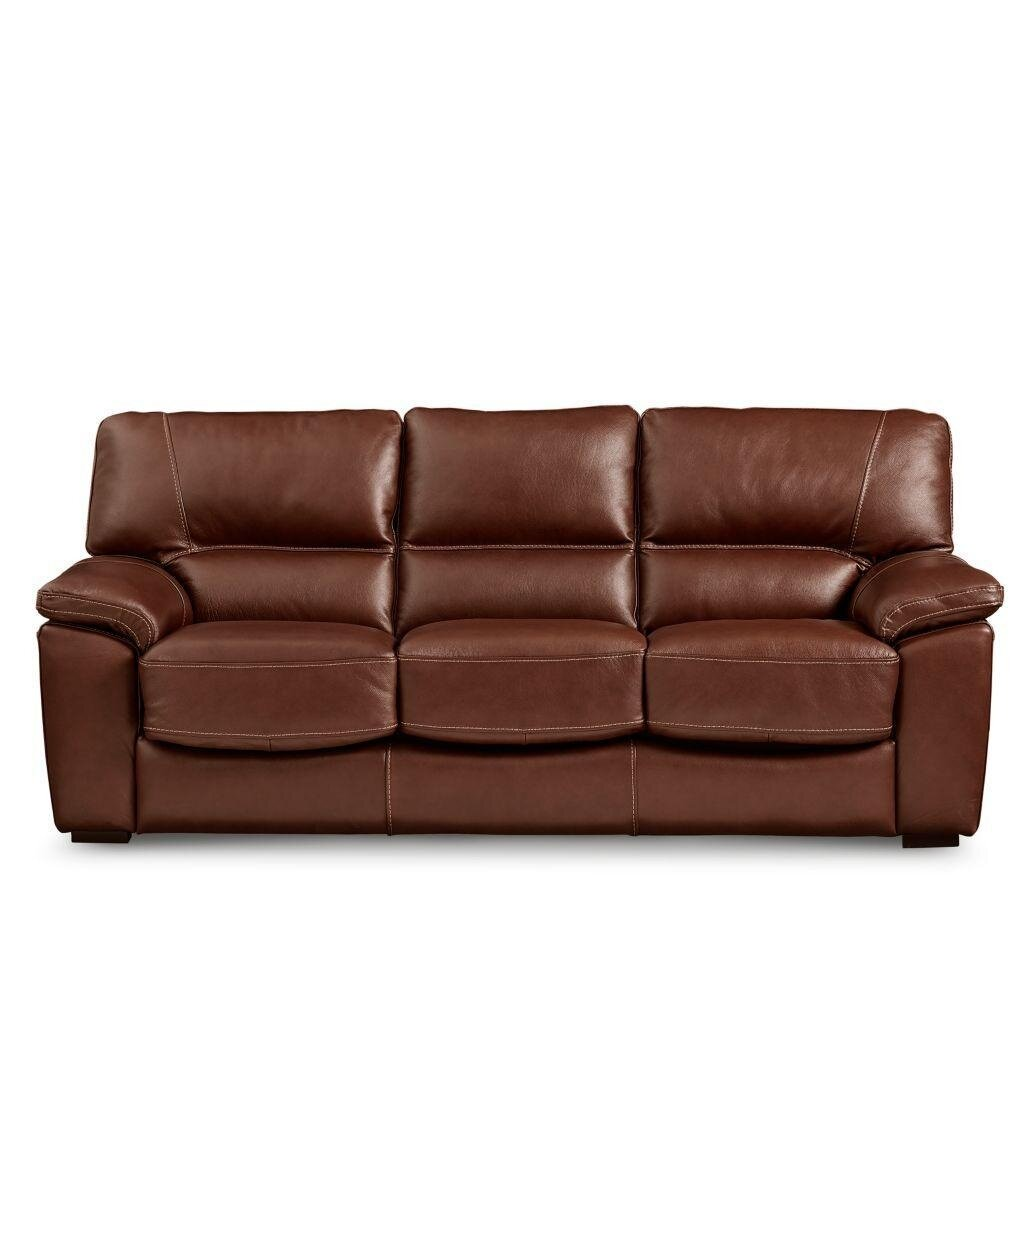 Macys Furniture | Sectional Sofa Beds | Macys Sofa Bed